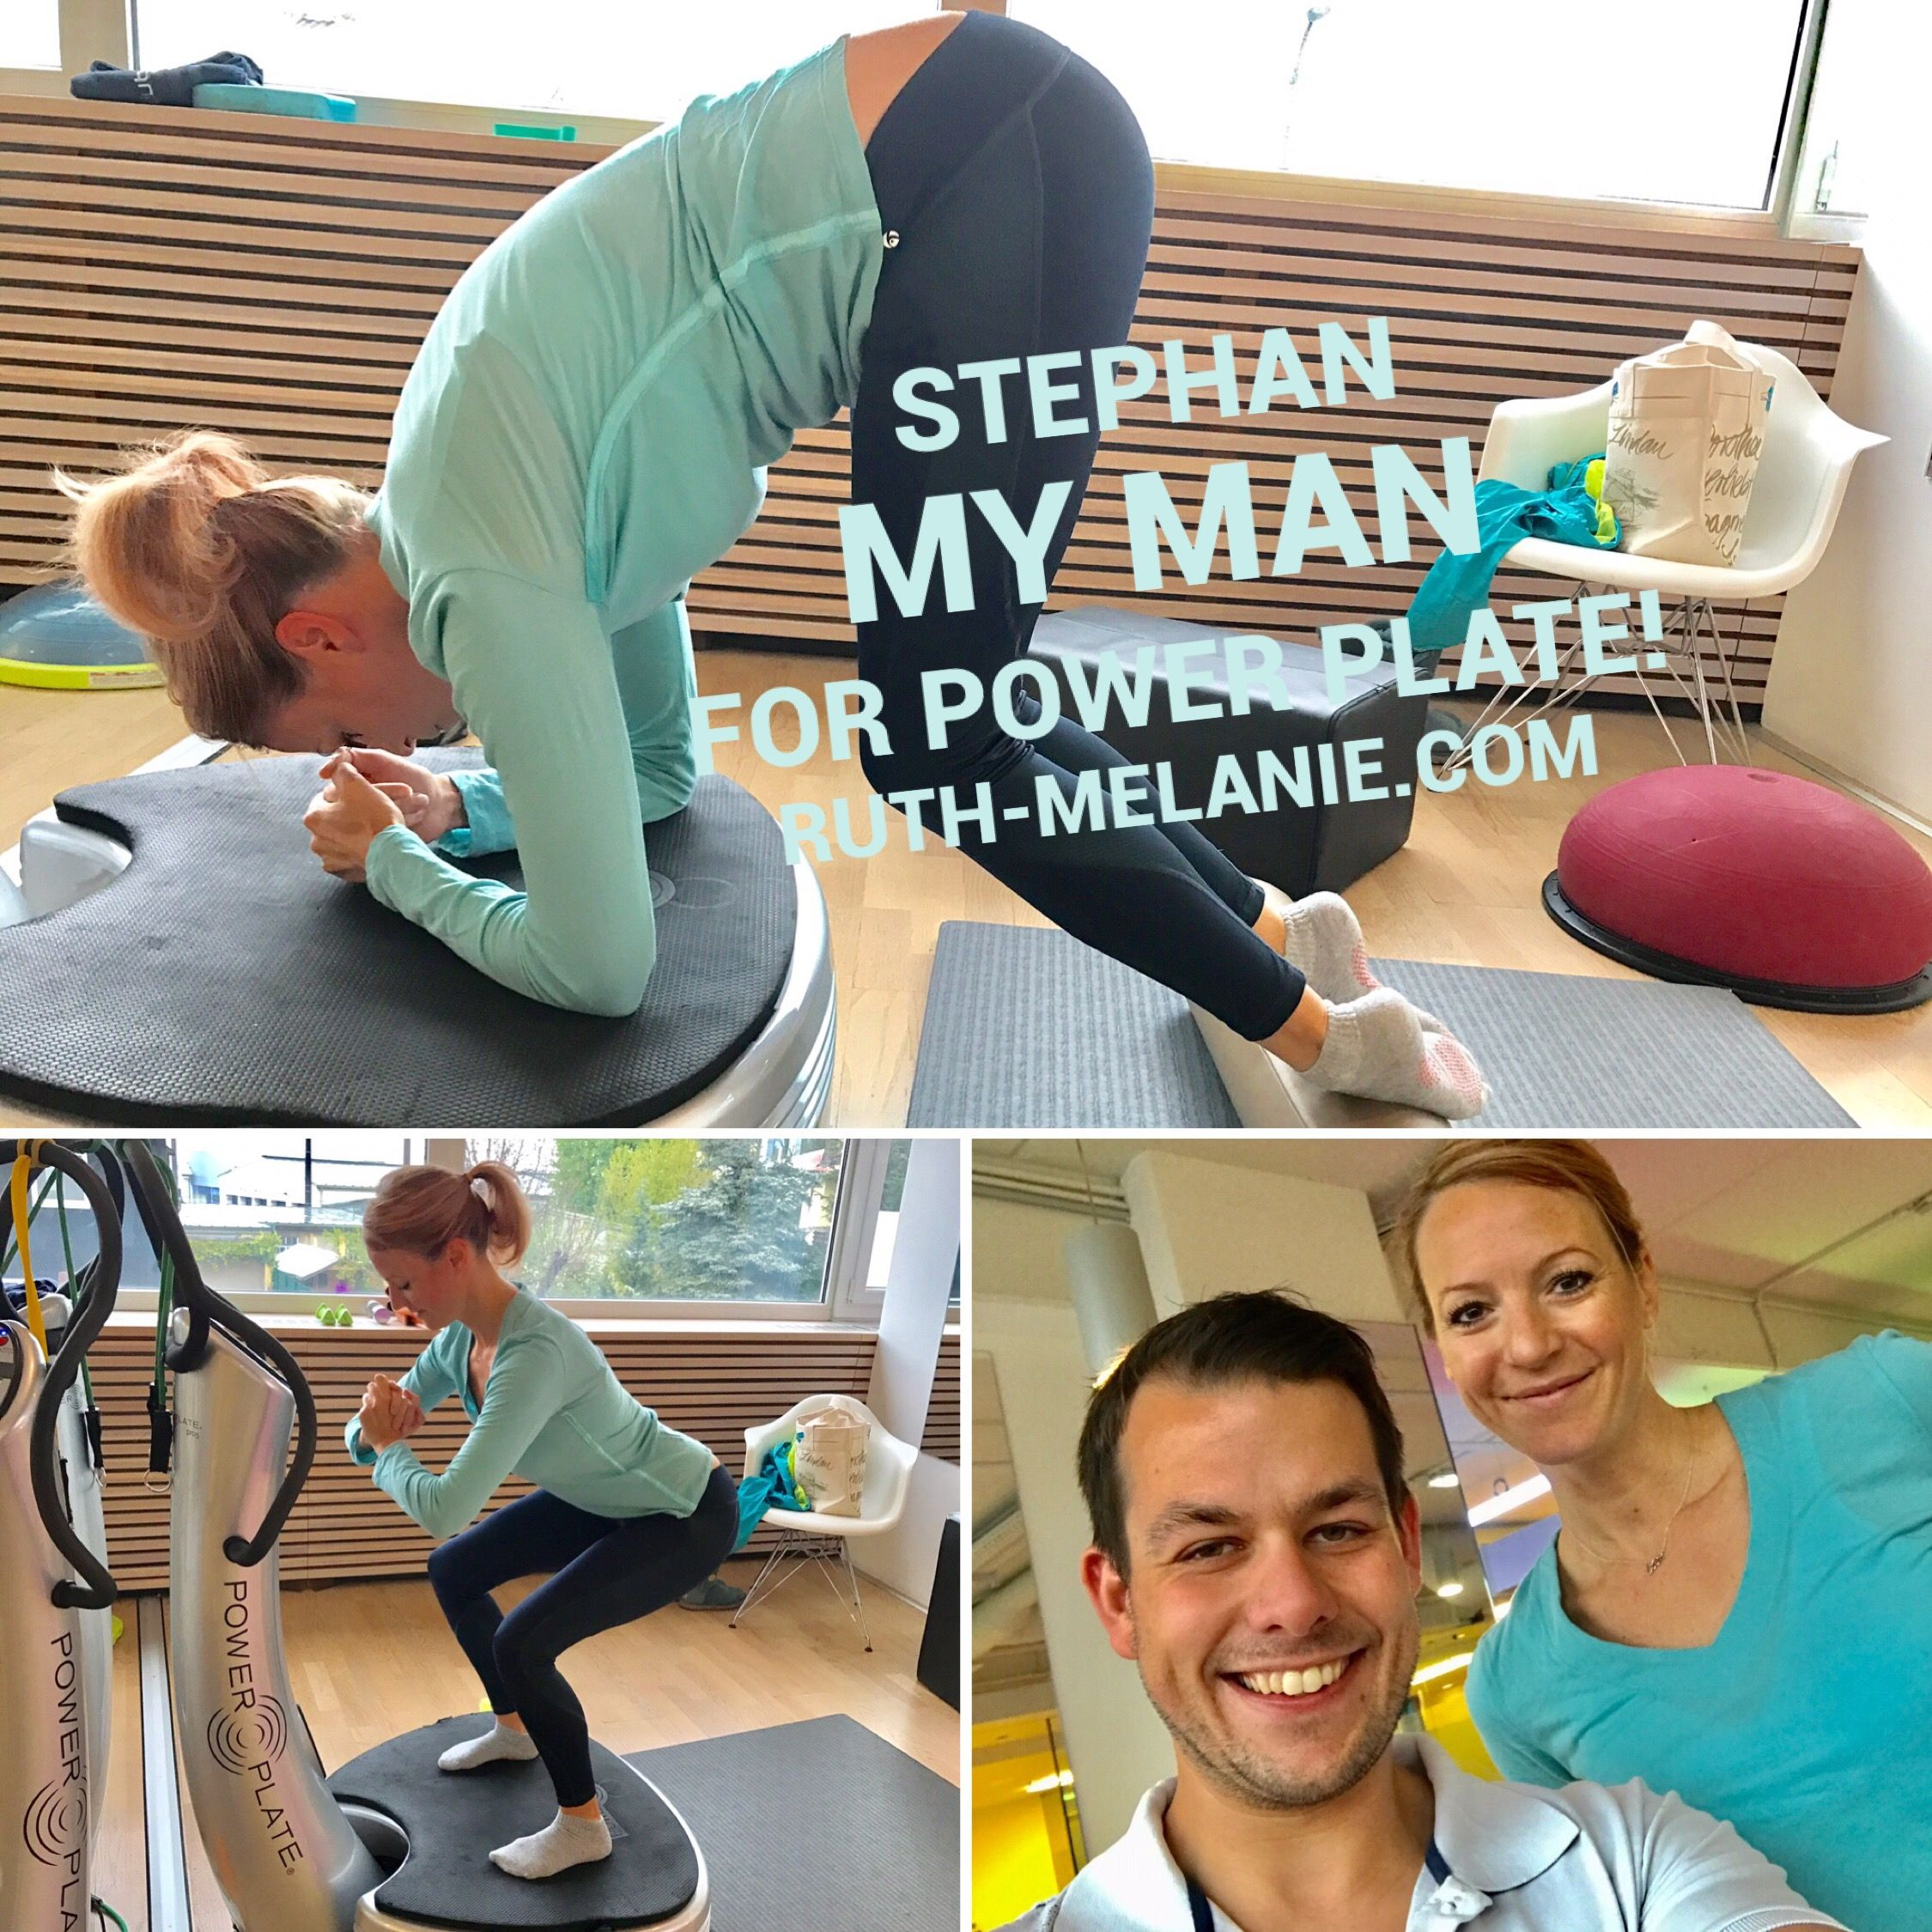 💪🏻Stephan my man for power plate💪🏻 #ruthmelanie #fashion #lifestyle #beauty #powerplate #fitness #training #motivation